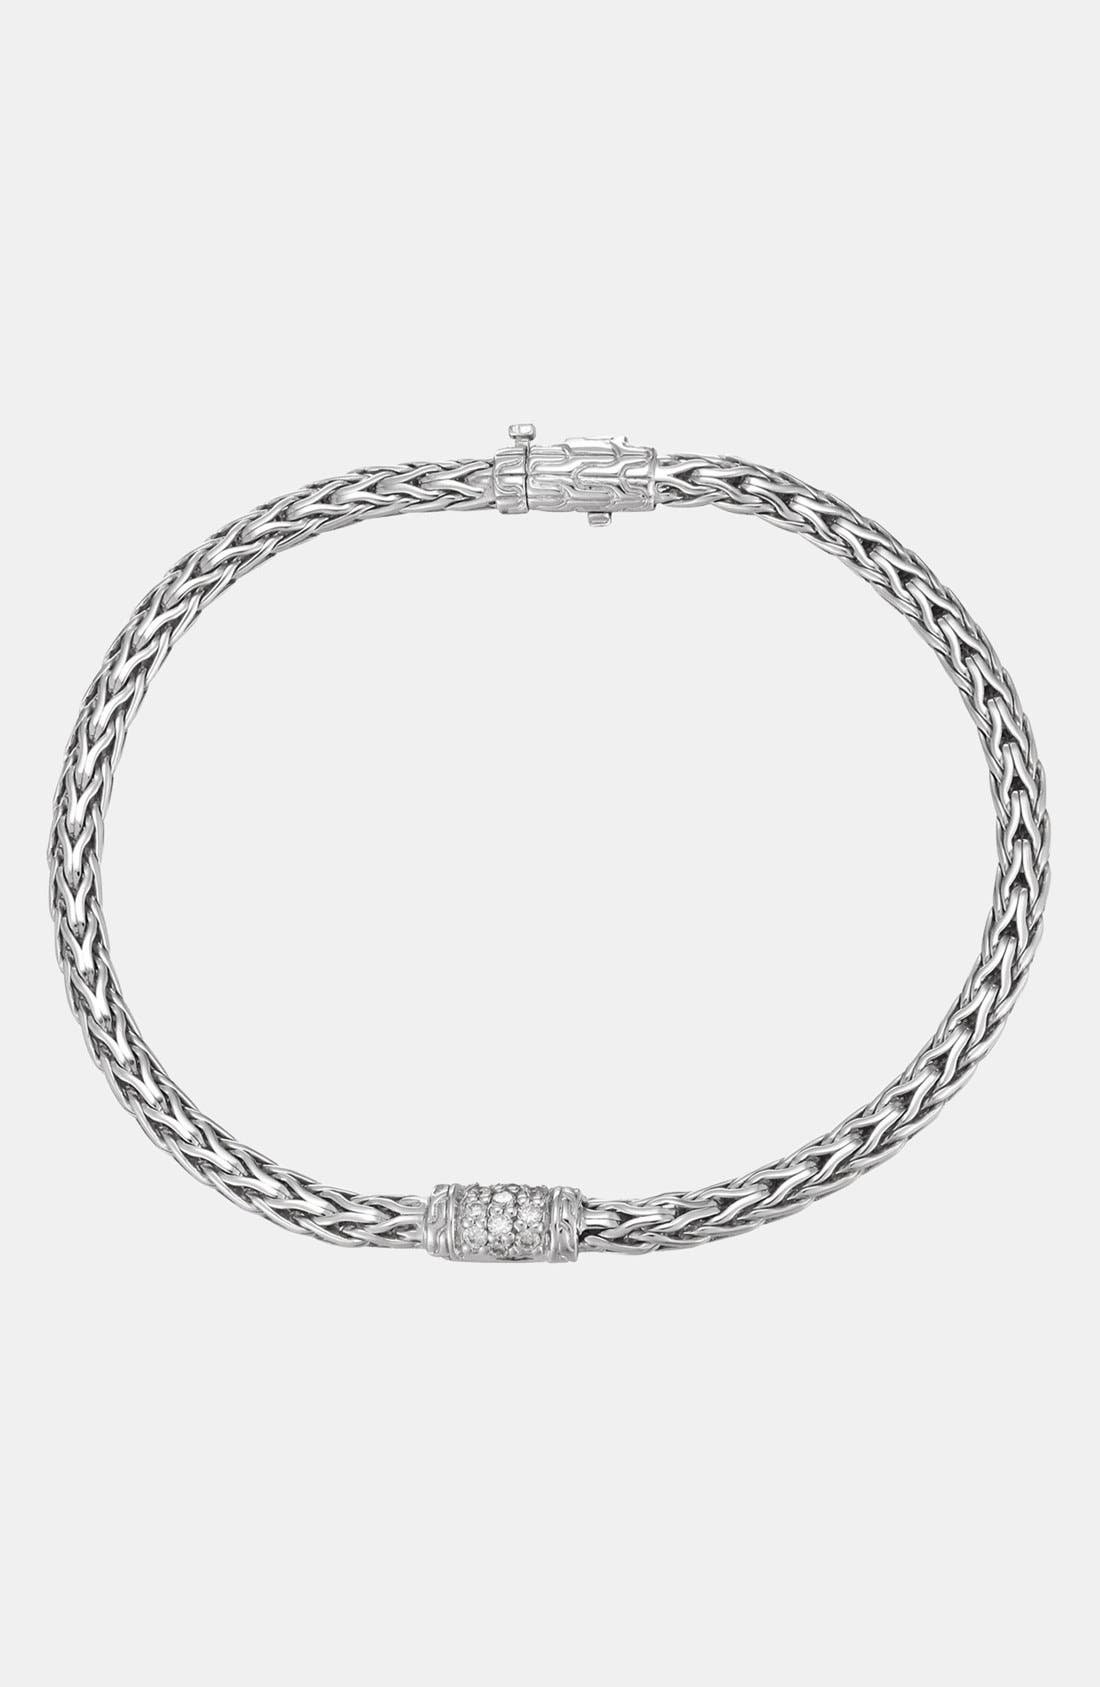 Alternate Image 1 Selected - John Hardy 'Classic Chain' Small Pavé Diamond Bracelet